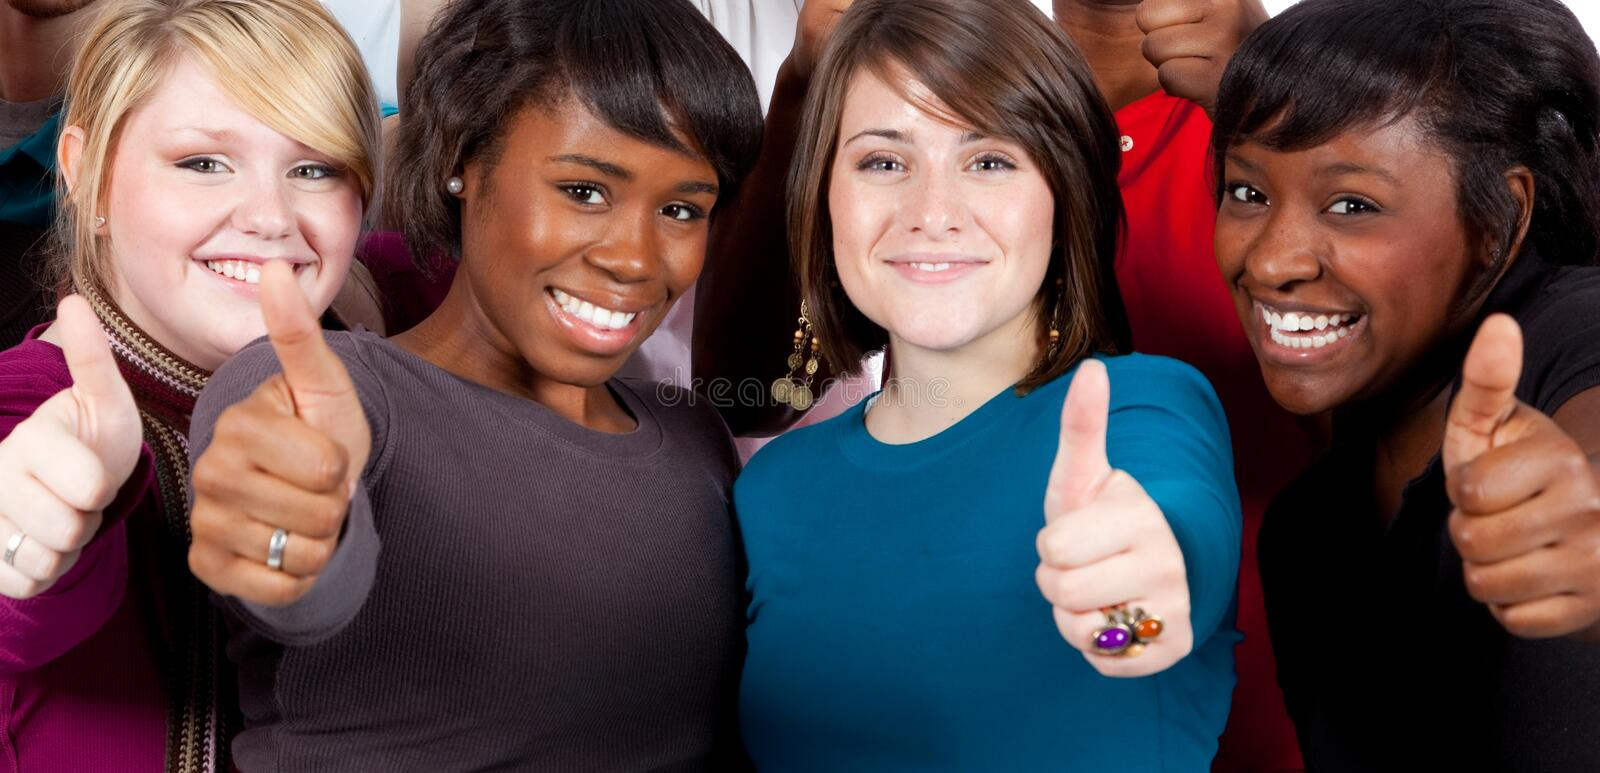 Download Multi-racial College Students With Thumbs Up Stock Photo - Image: 13727106